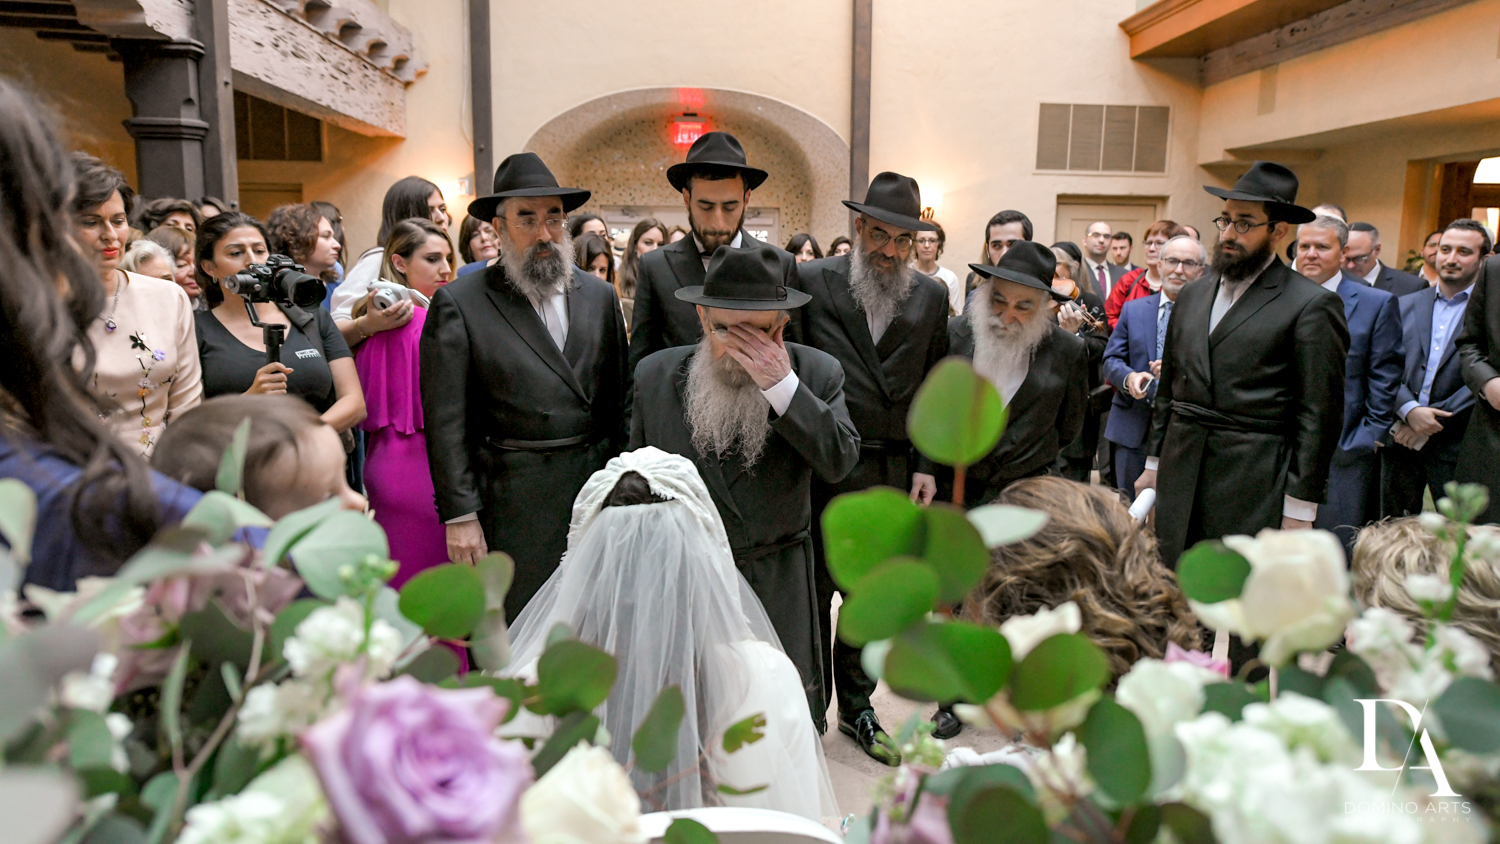 Bedeken rabbi customs at Hasidic Jewish Wedding at The Addison in Boca Raton by Domino Arts Photography